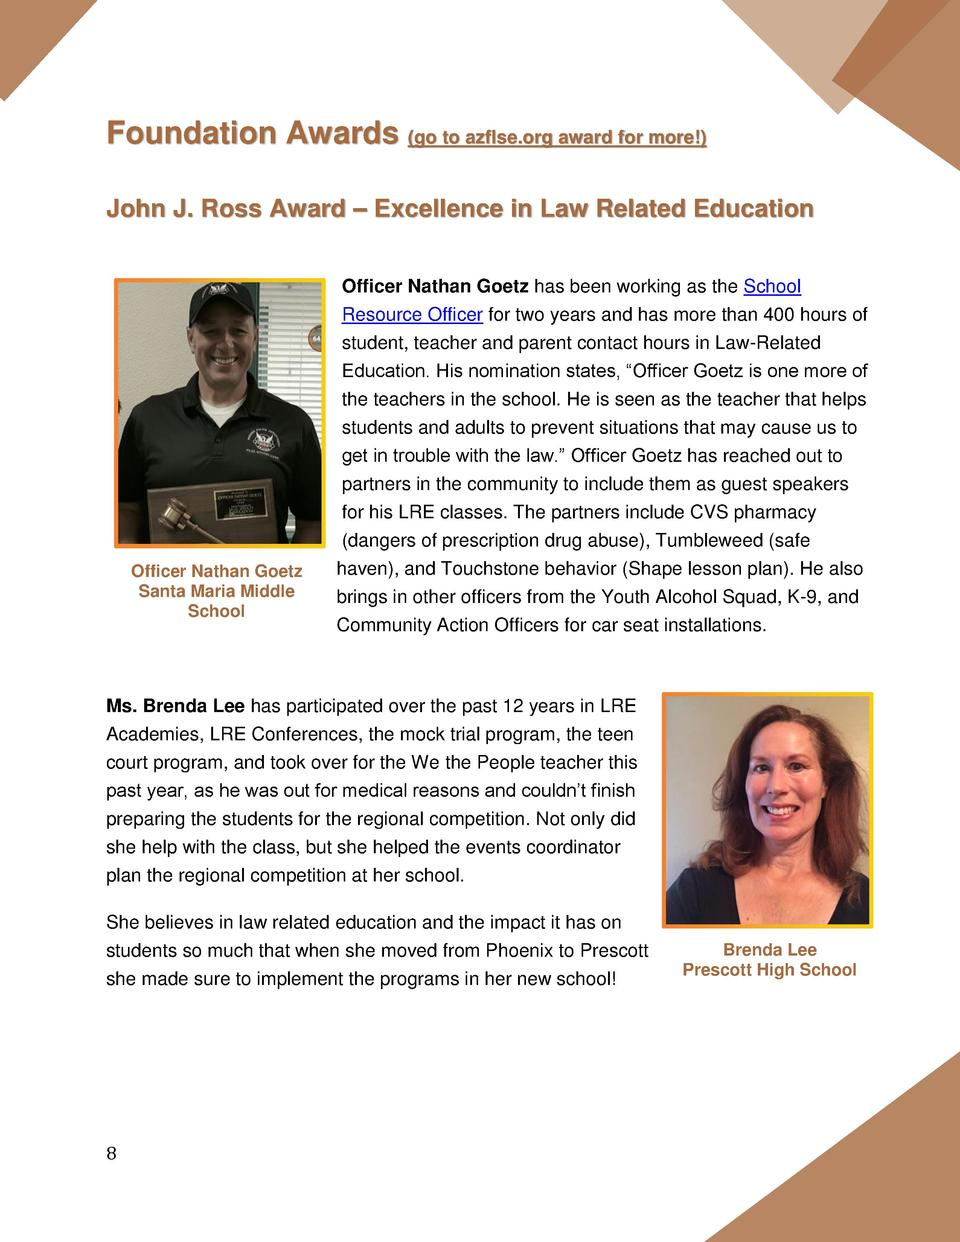 Foundation Awards  go to azflse.org award for more   John J. Ross Award     Excellence in Law Related Education Officer Na...